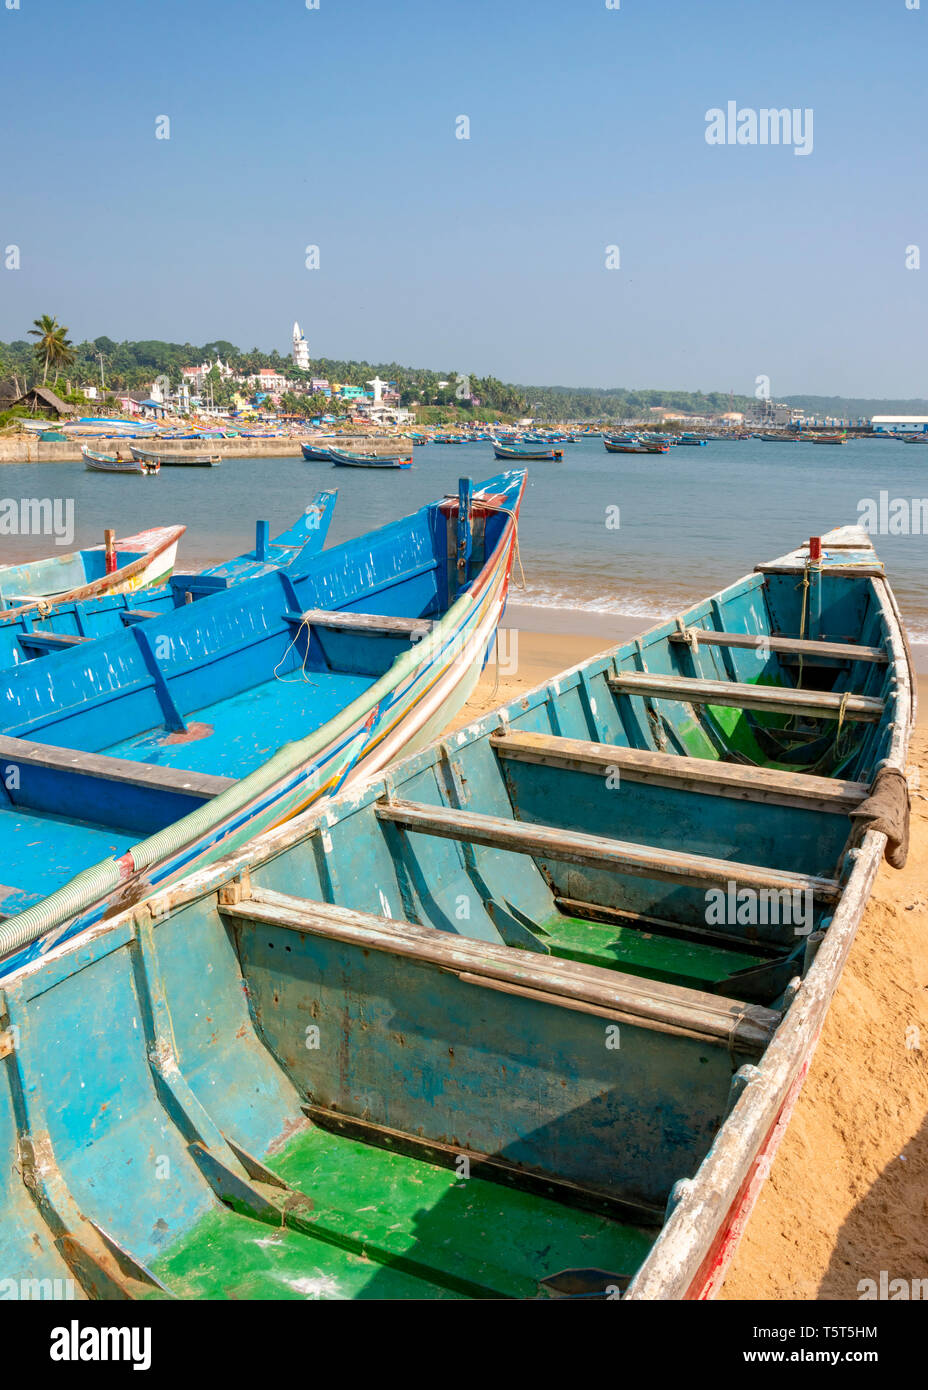 Vertical view of colourful fishing boats at Vizhinjam in Kerala, India. - Stock Image